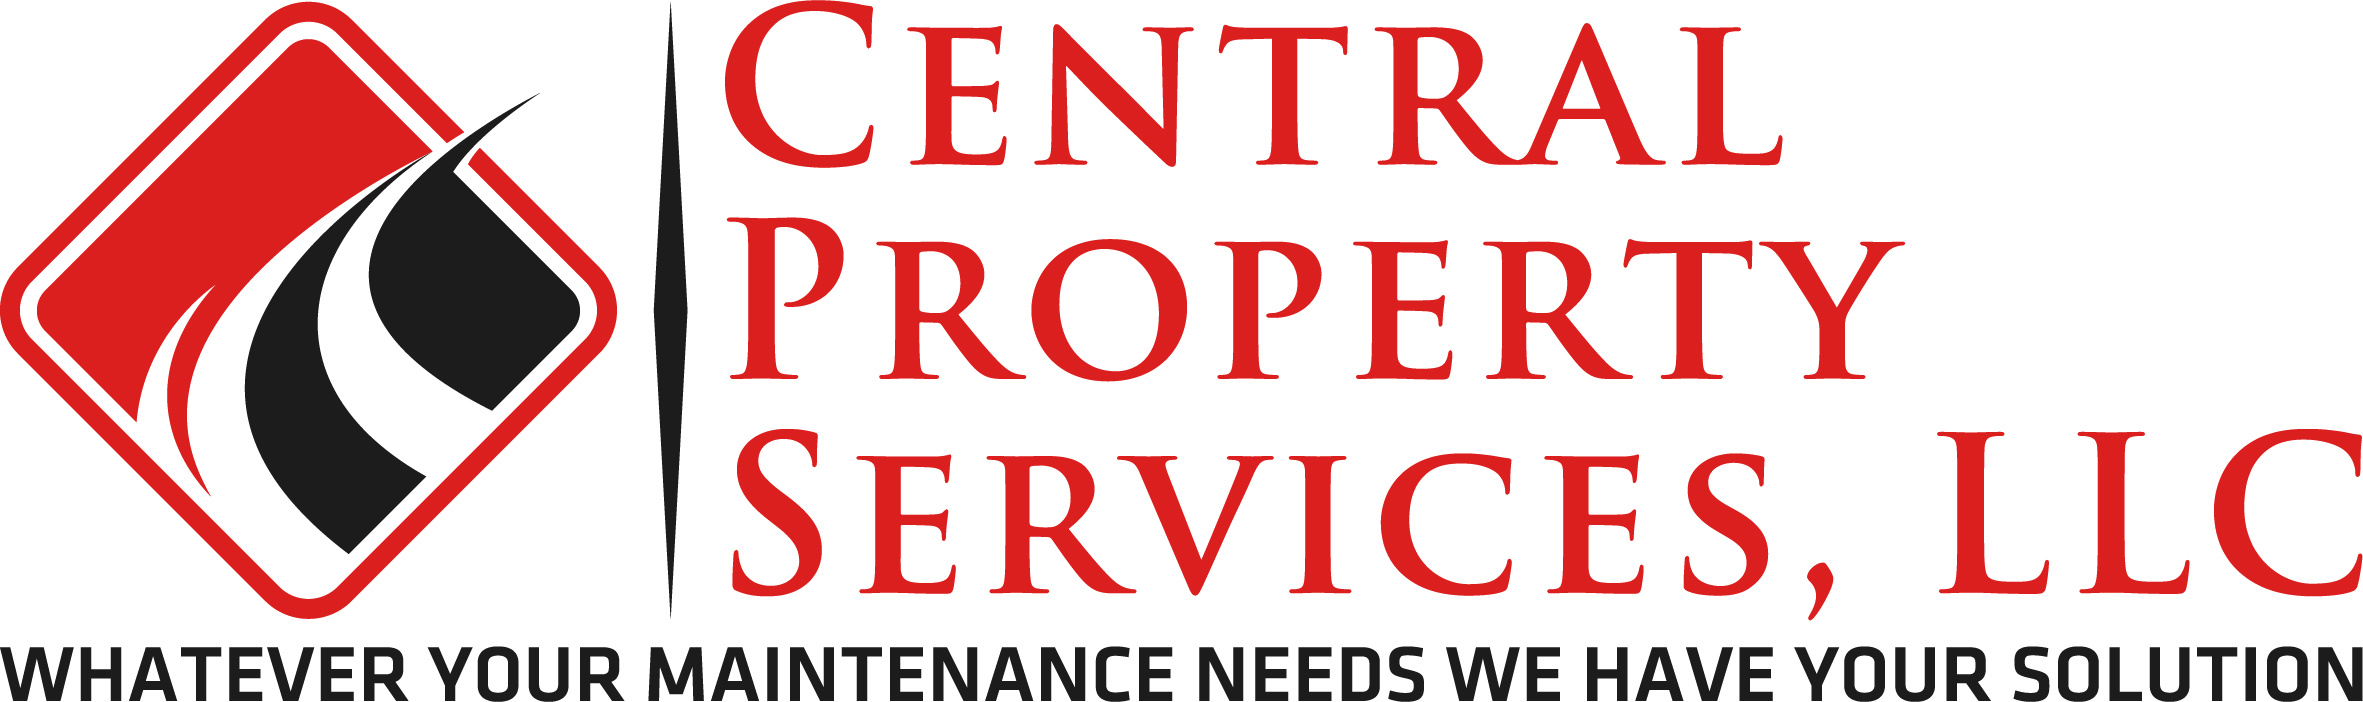 central property services